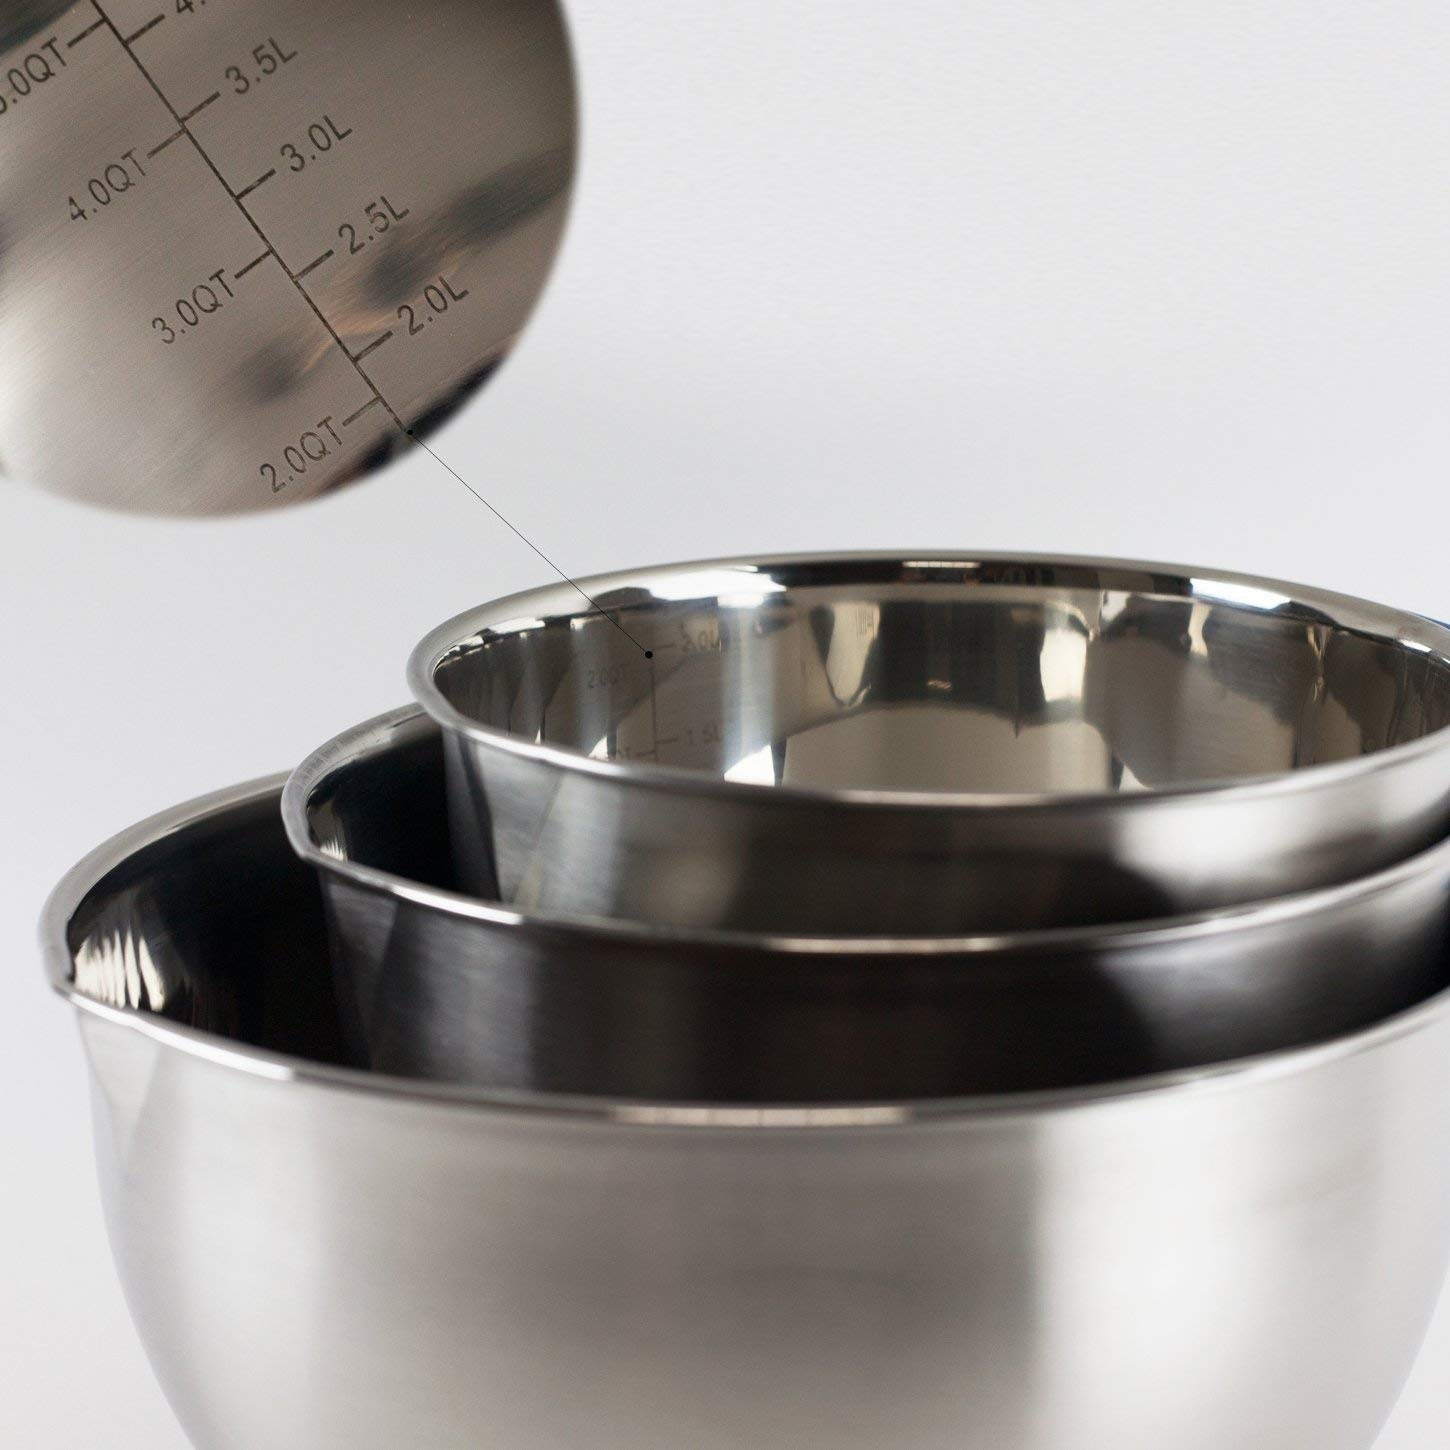 Stainless Steel Mixing Bowls With lid Handle Non-Slip Silicone Base DIY Cake Baking Mixer Bowl Salad Grater Kitchen Cooking Tool